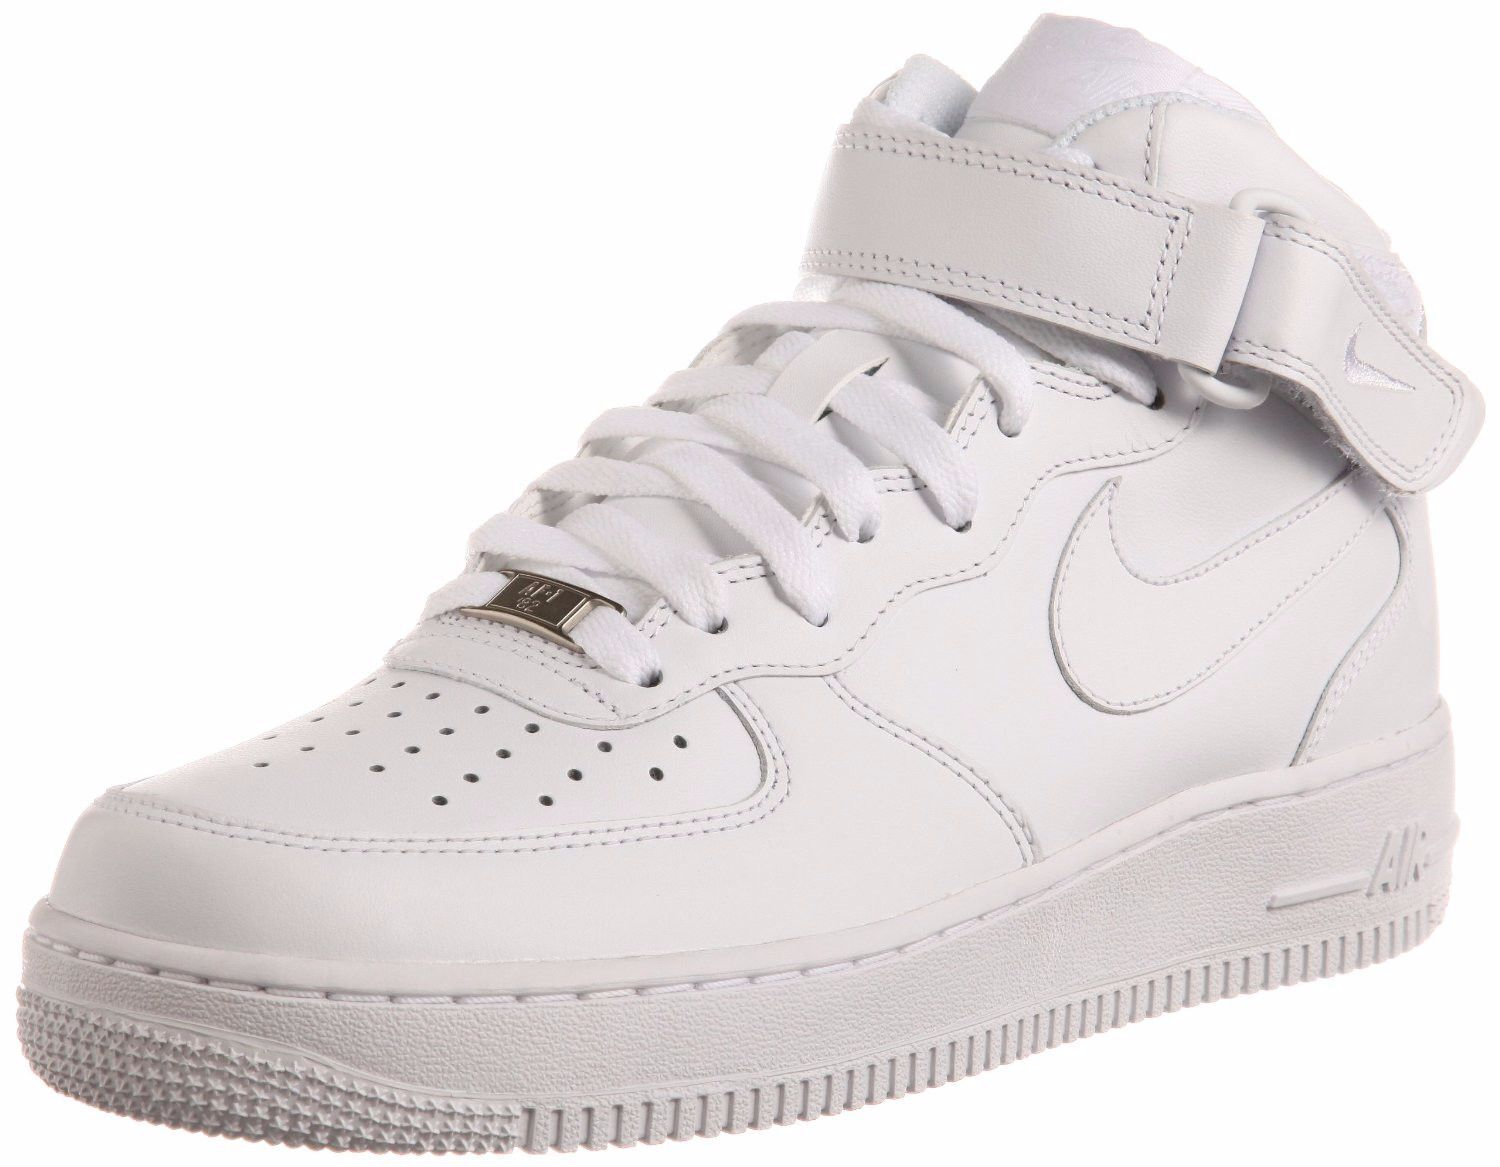 Nike Air Force 1 Mid '07 White/White Price reduction Cheap women's shoes women's shoes